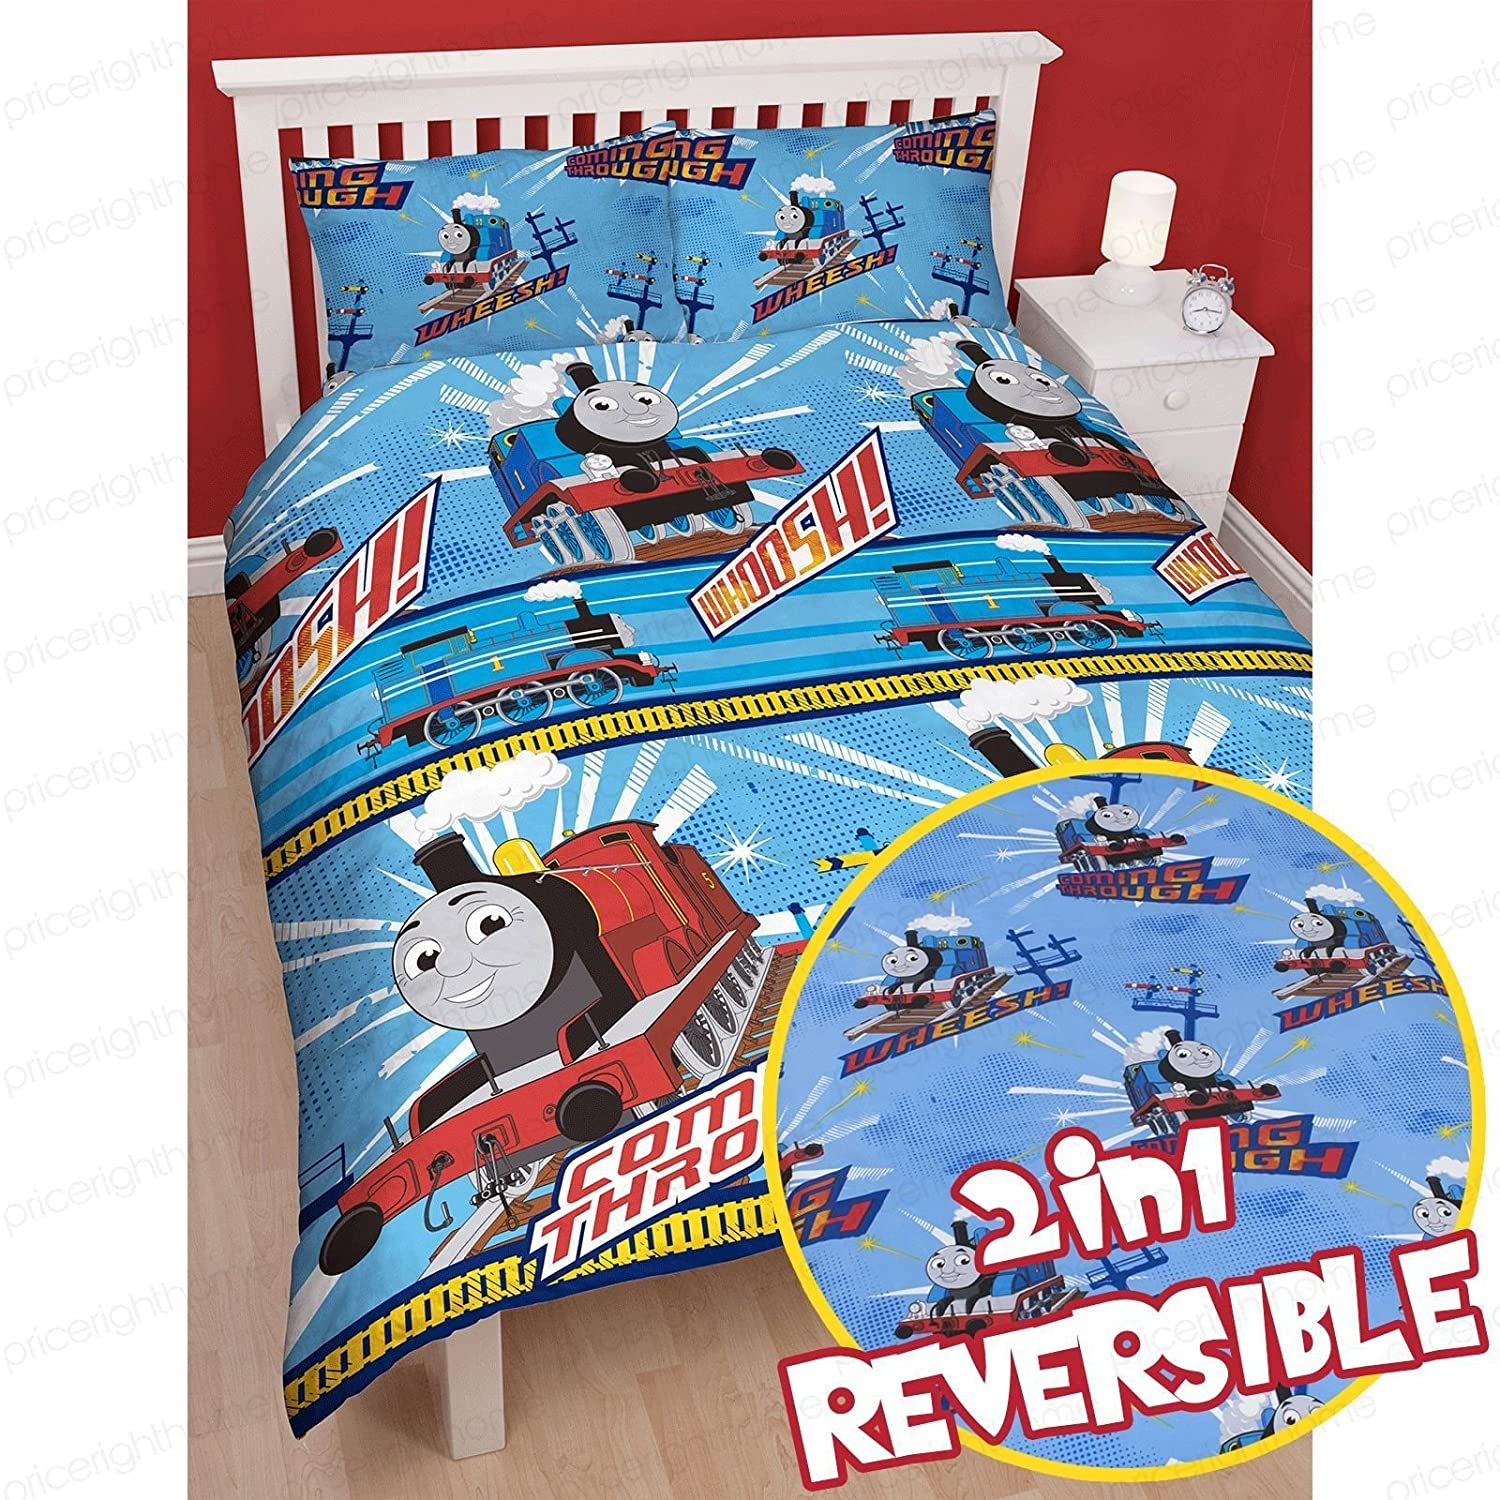 Thomas   Friends  WHEESSH  Duvet Cover Set New Tank Engine Single Rotary  Reversible Duvet Set Birthday Christmas Gift   Duvet cover and Pillow Case. Thomas   Friends  WHEESSH  Duvet Cover Set New Tank Engine Single